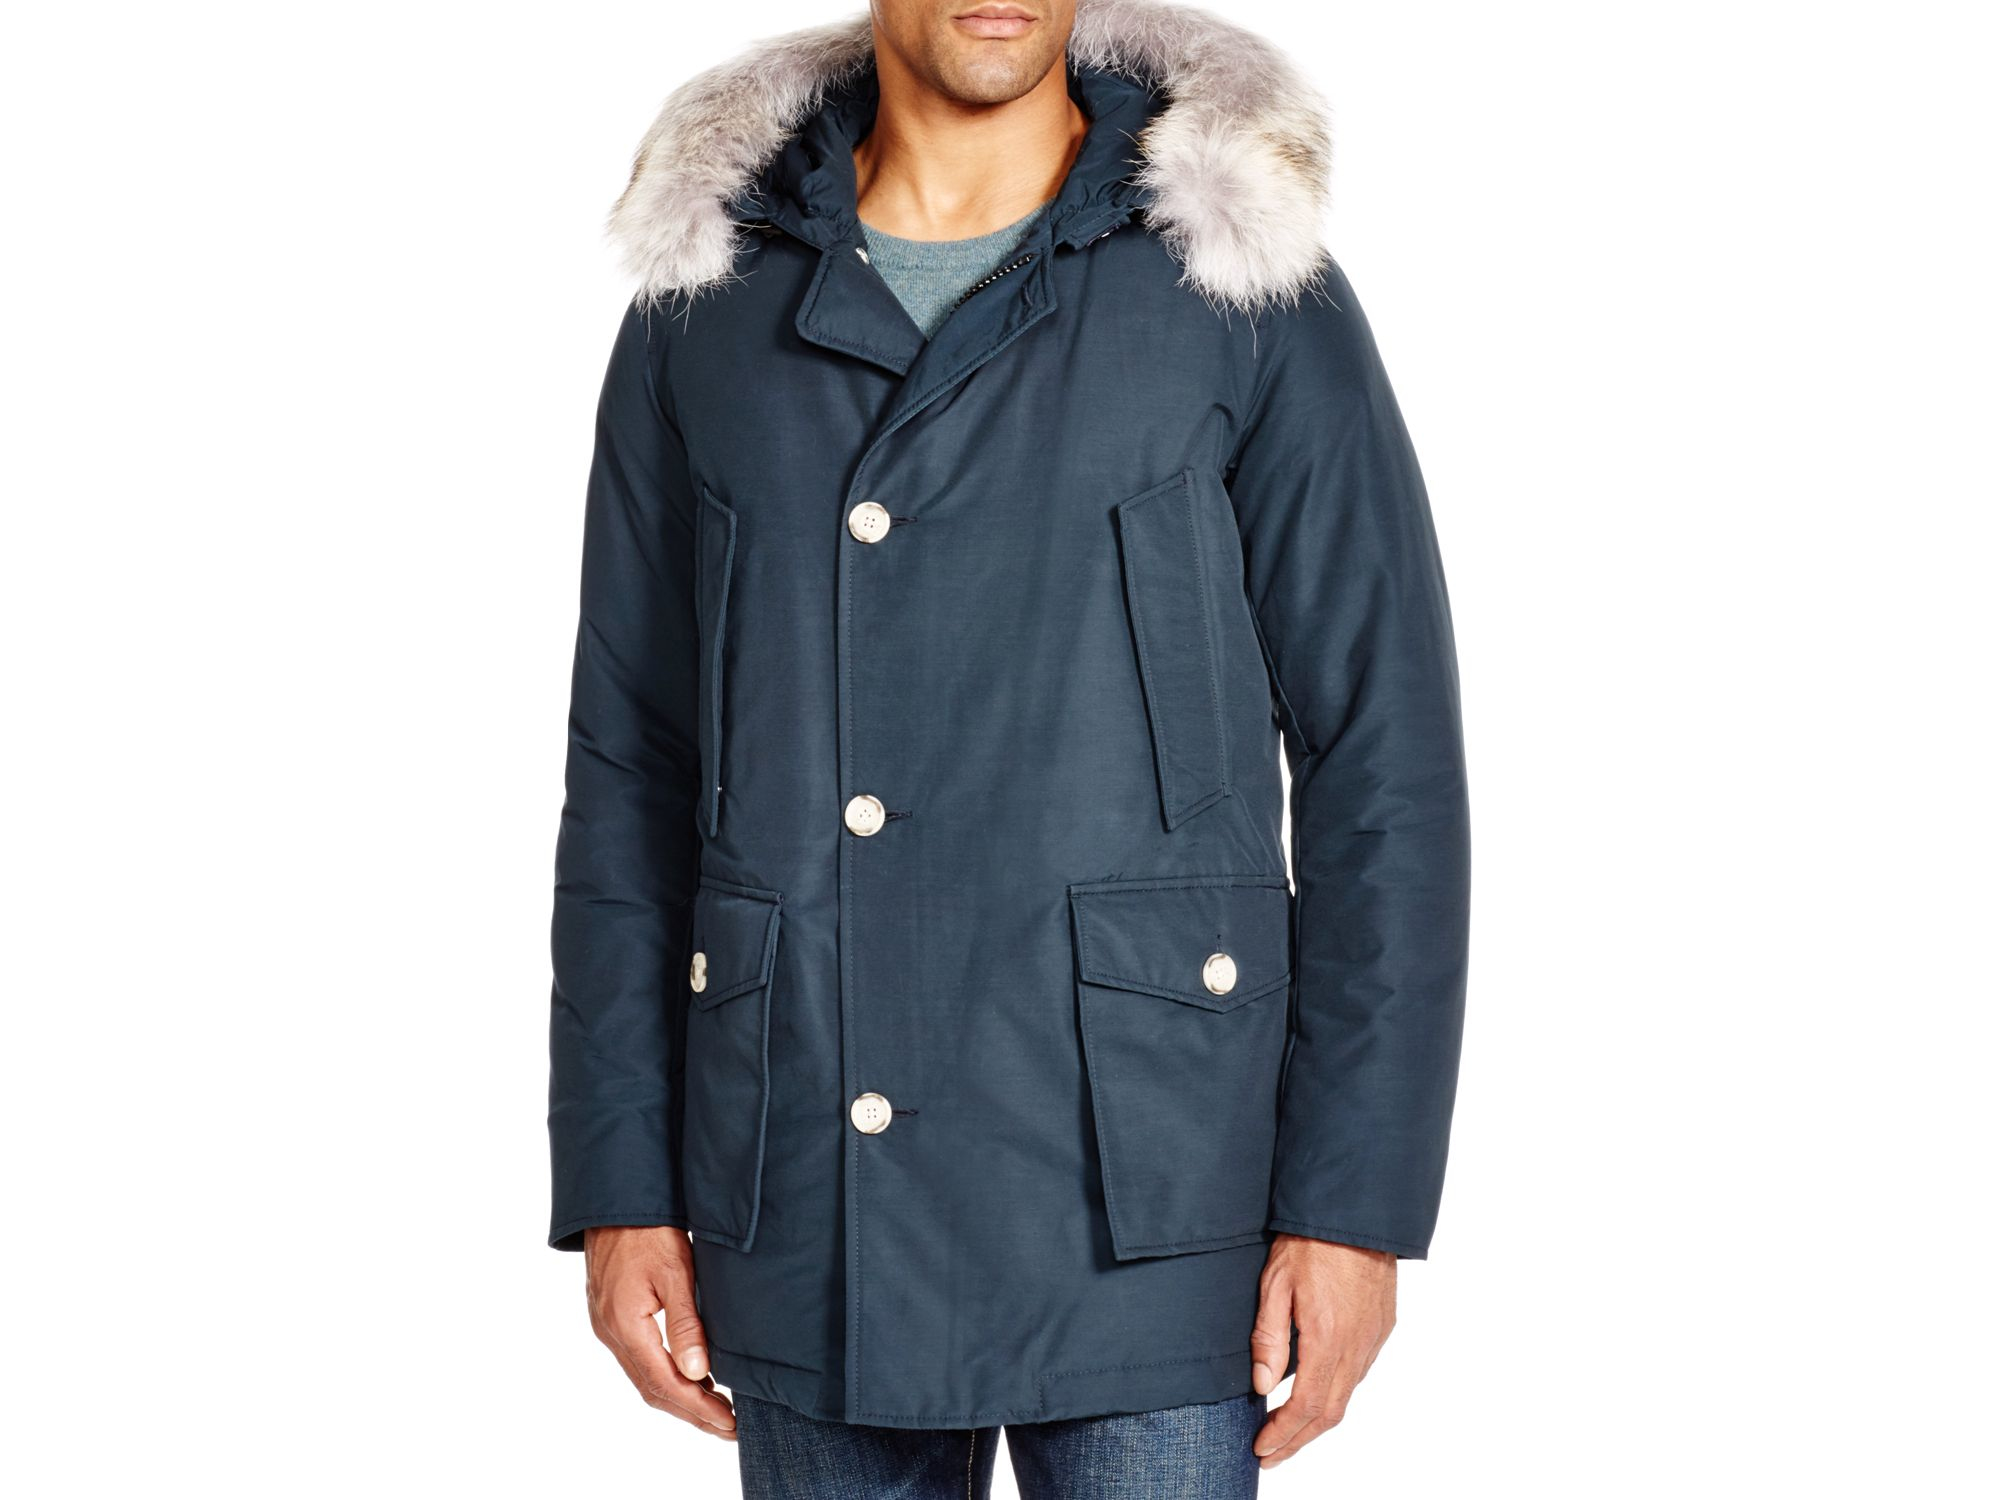 woolrich arctic down parka in blue navy lyst. Black Bedroom Furniture Sets. Home Design Ideas